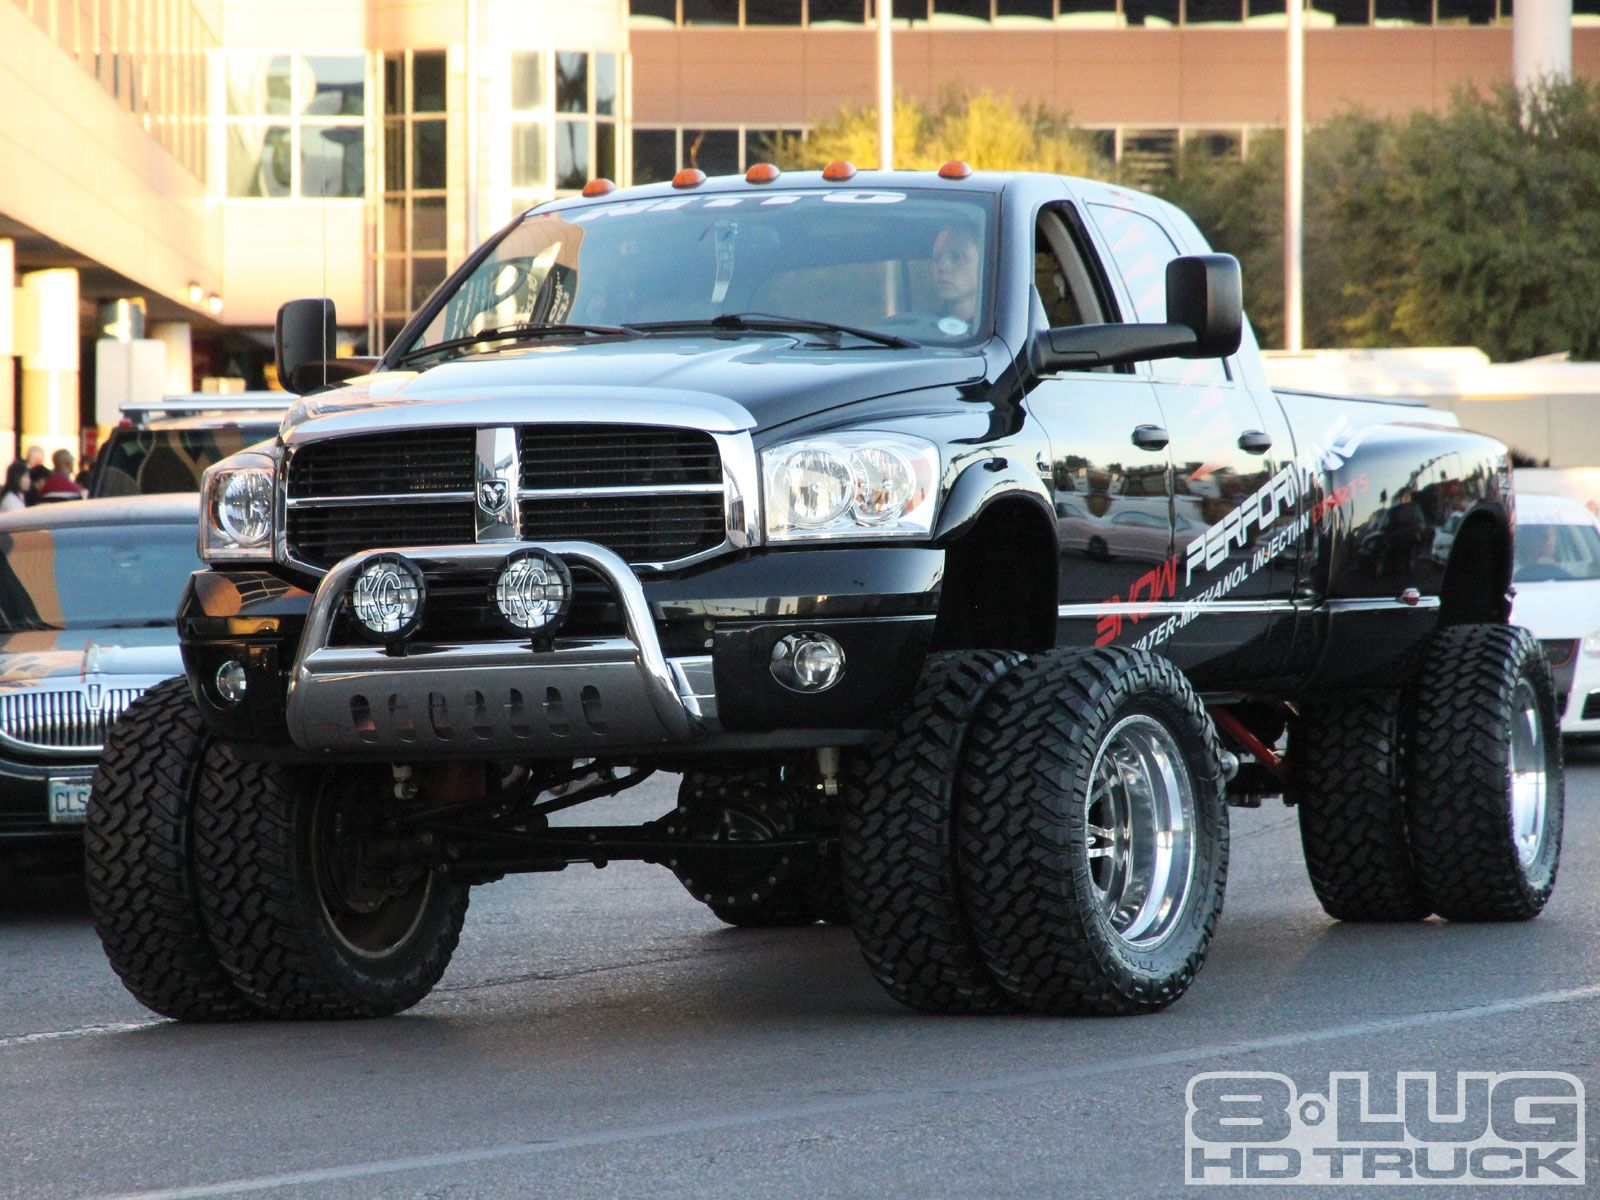 Big boy toys car  If i bought a truck it would be this BIG Dodge Dually wheel haha